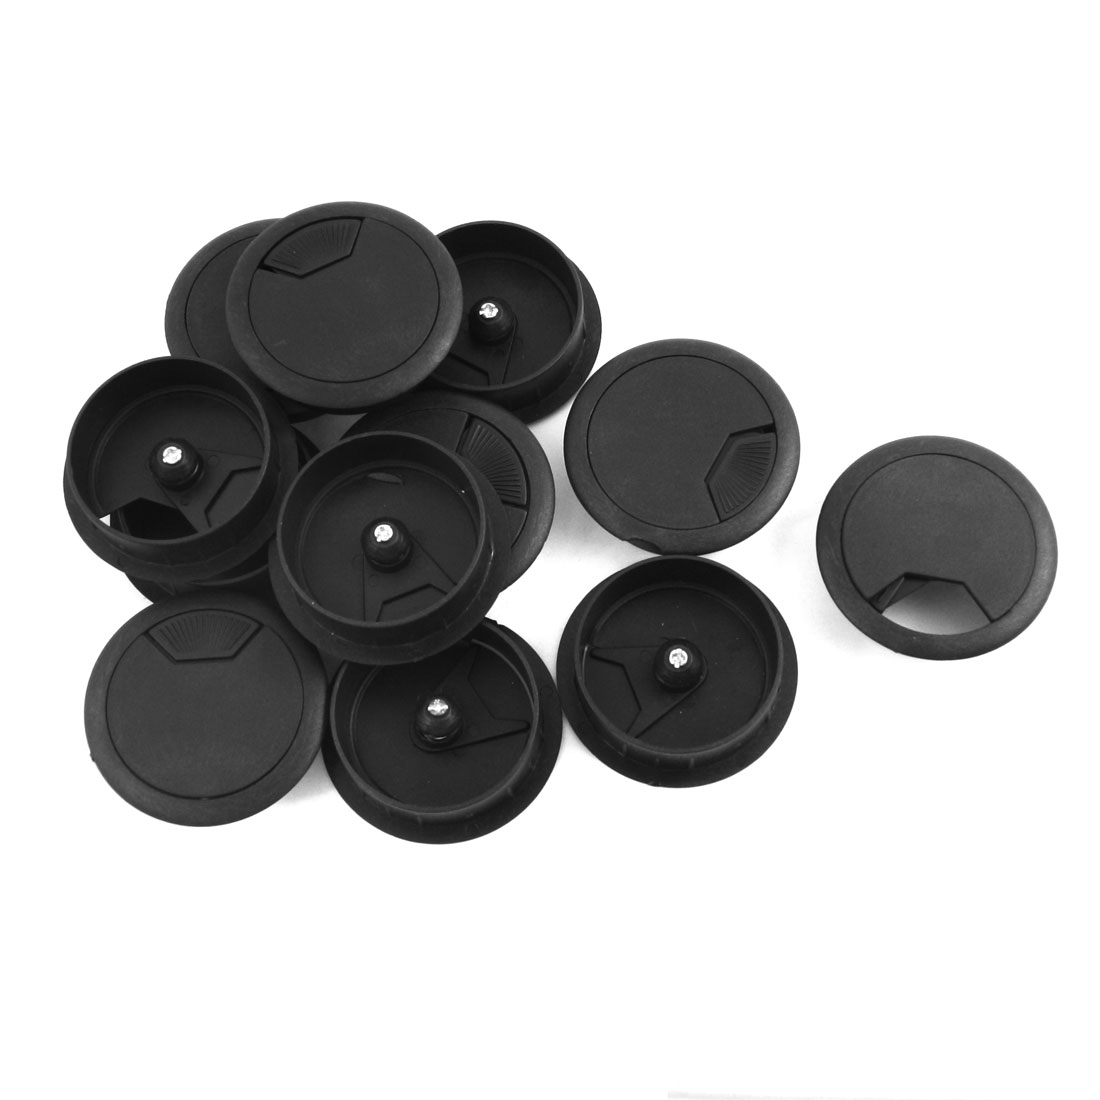 12 Pcs 50mm Mounting Hole Diameter Computer Desk Table Counter Top Cable Cord Plastic Grommets